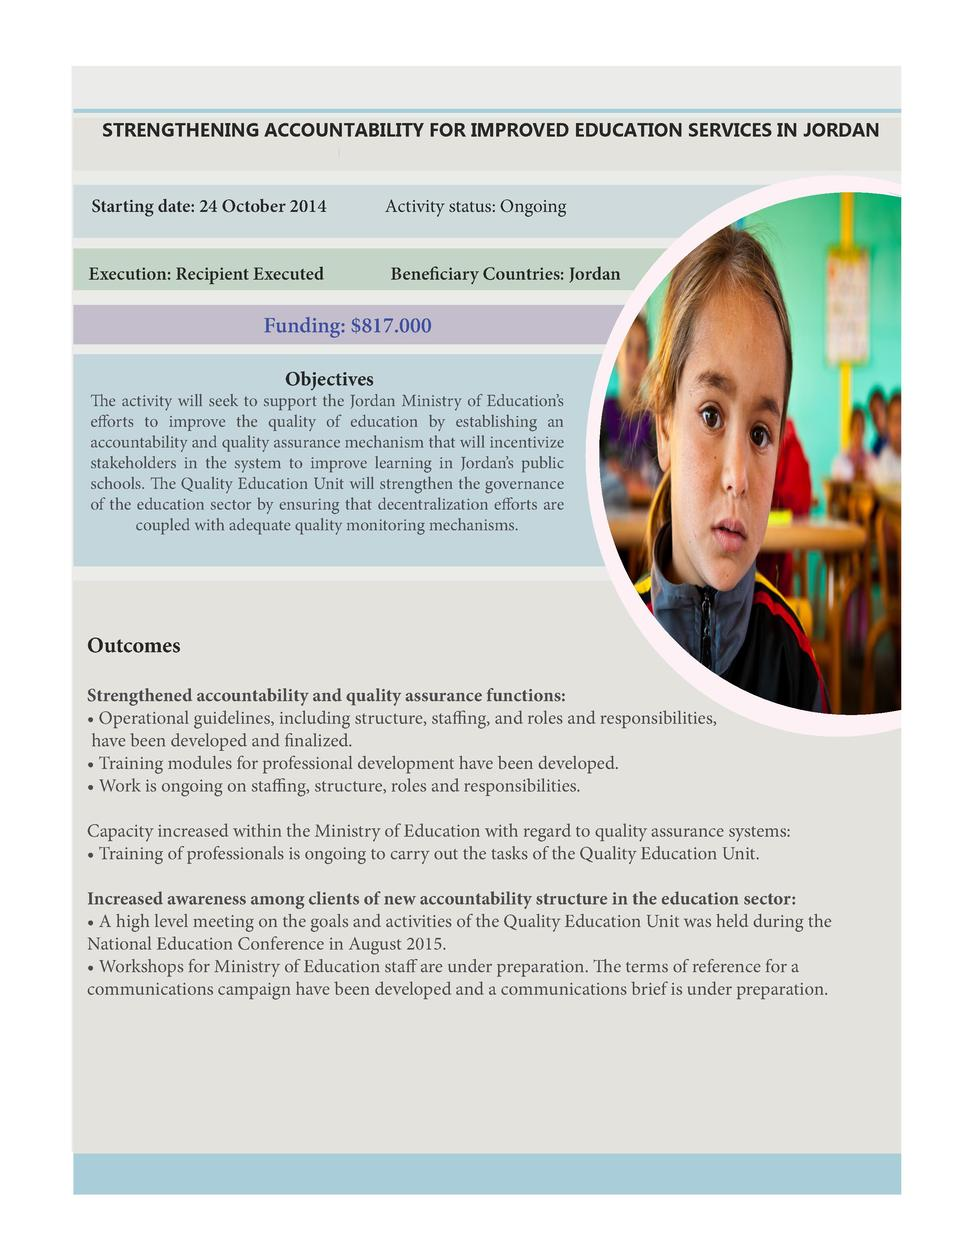 STRENGTHENING ACCOUNTABILITY FOR IMPROVED EDUCATION SERVICES IN JORDAN  Starting date  24 October 2014  Activity status  O...